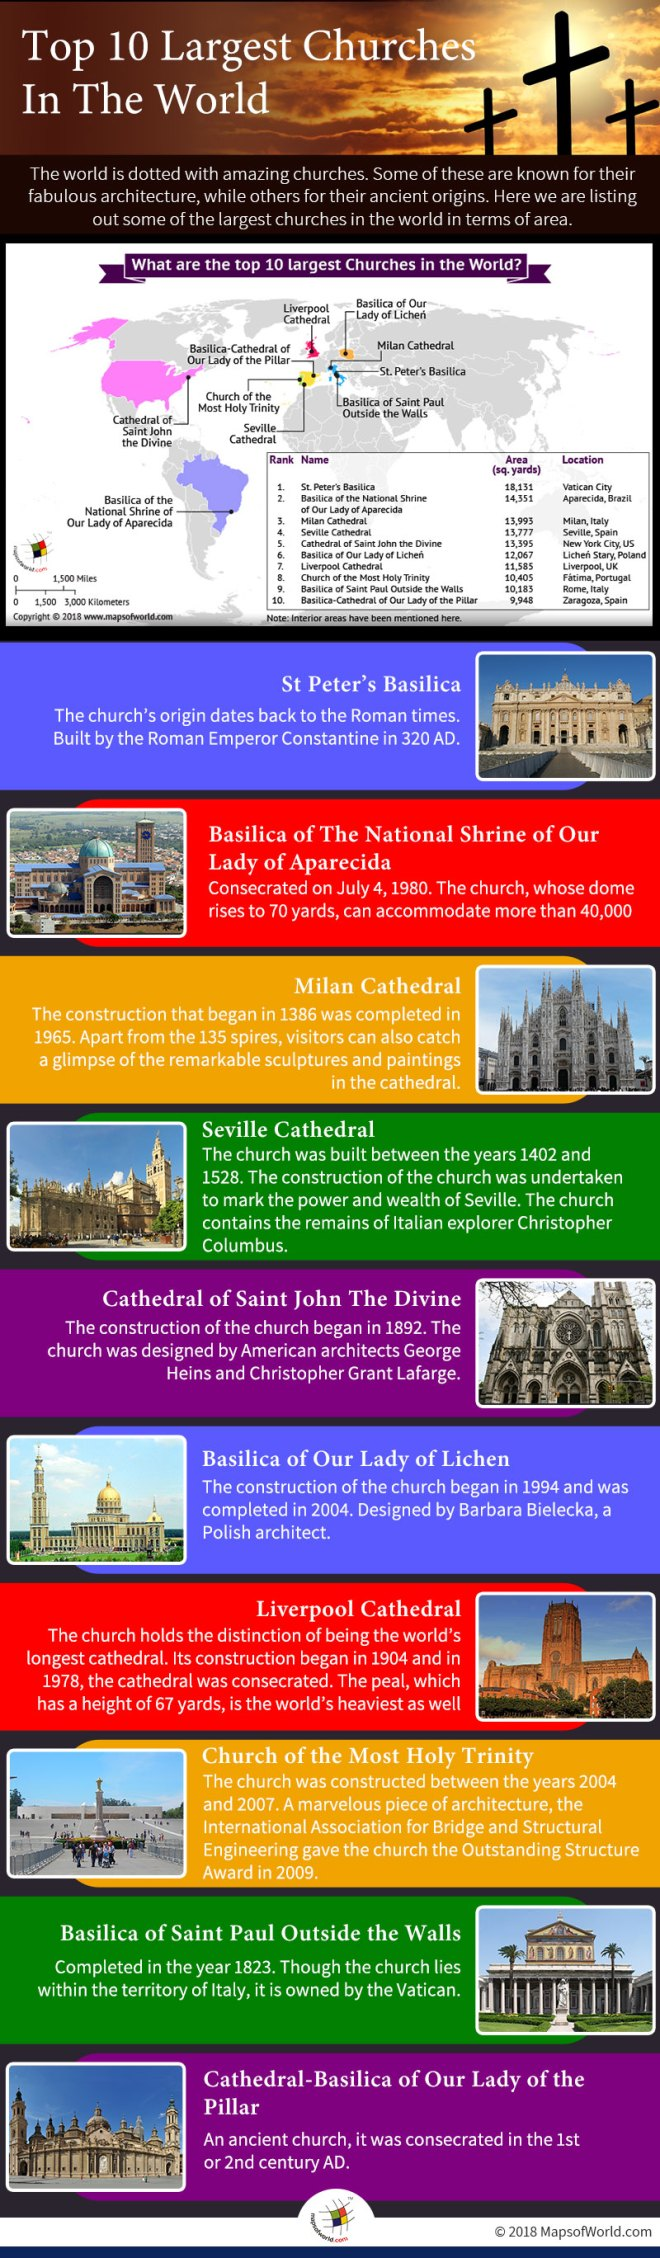 Infographic depicting the top-10 largest churches in the world